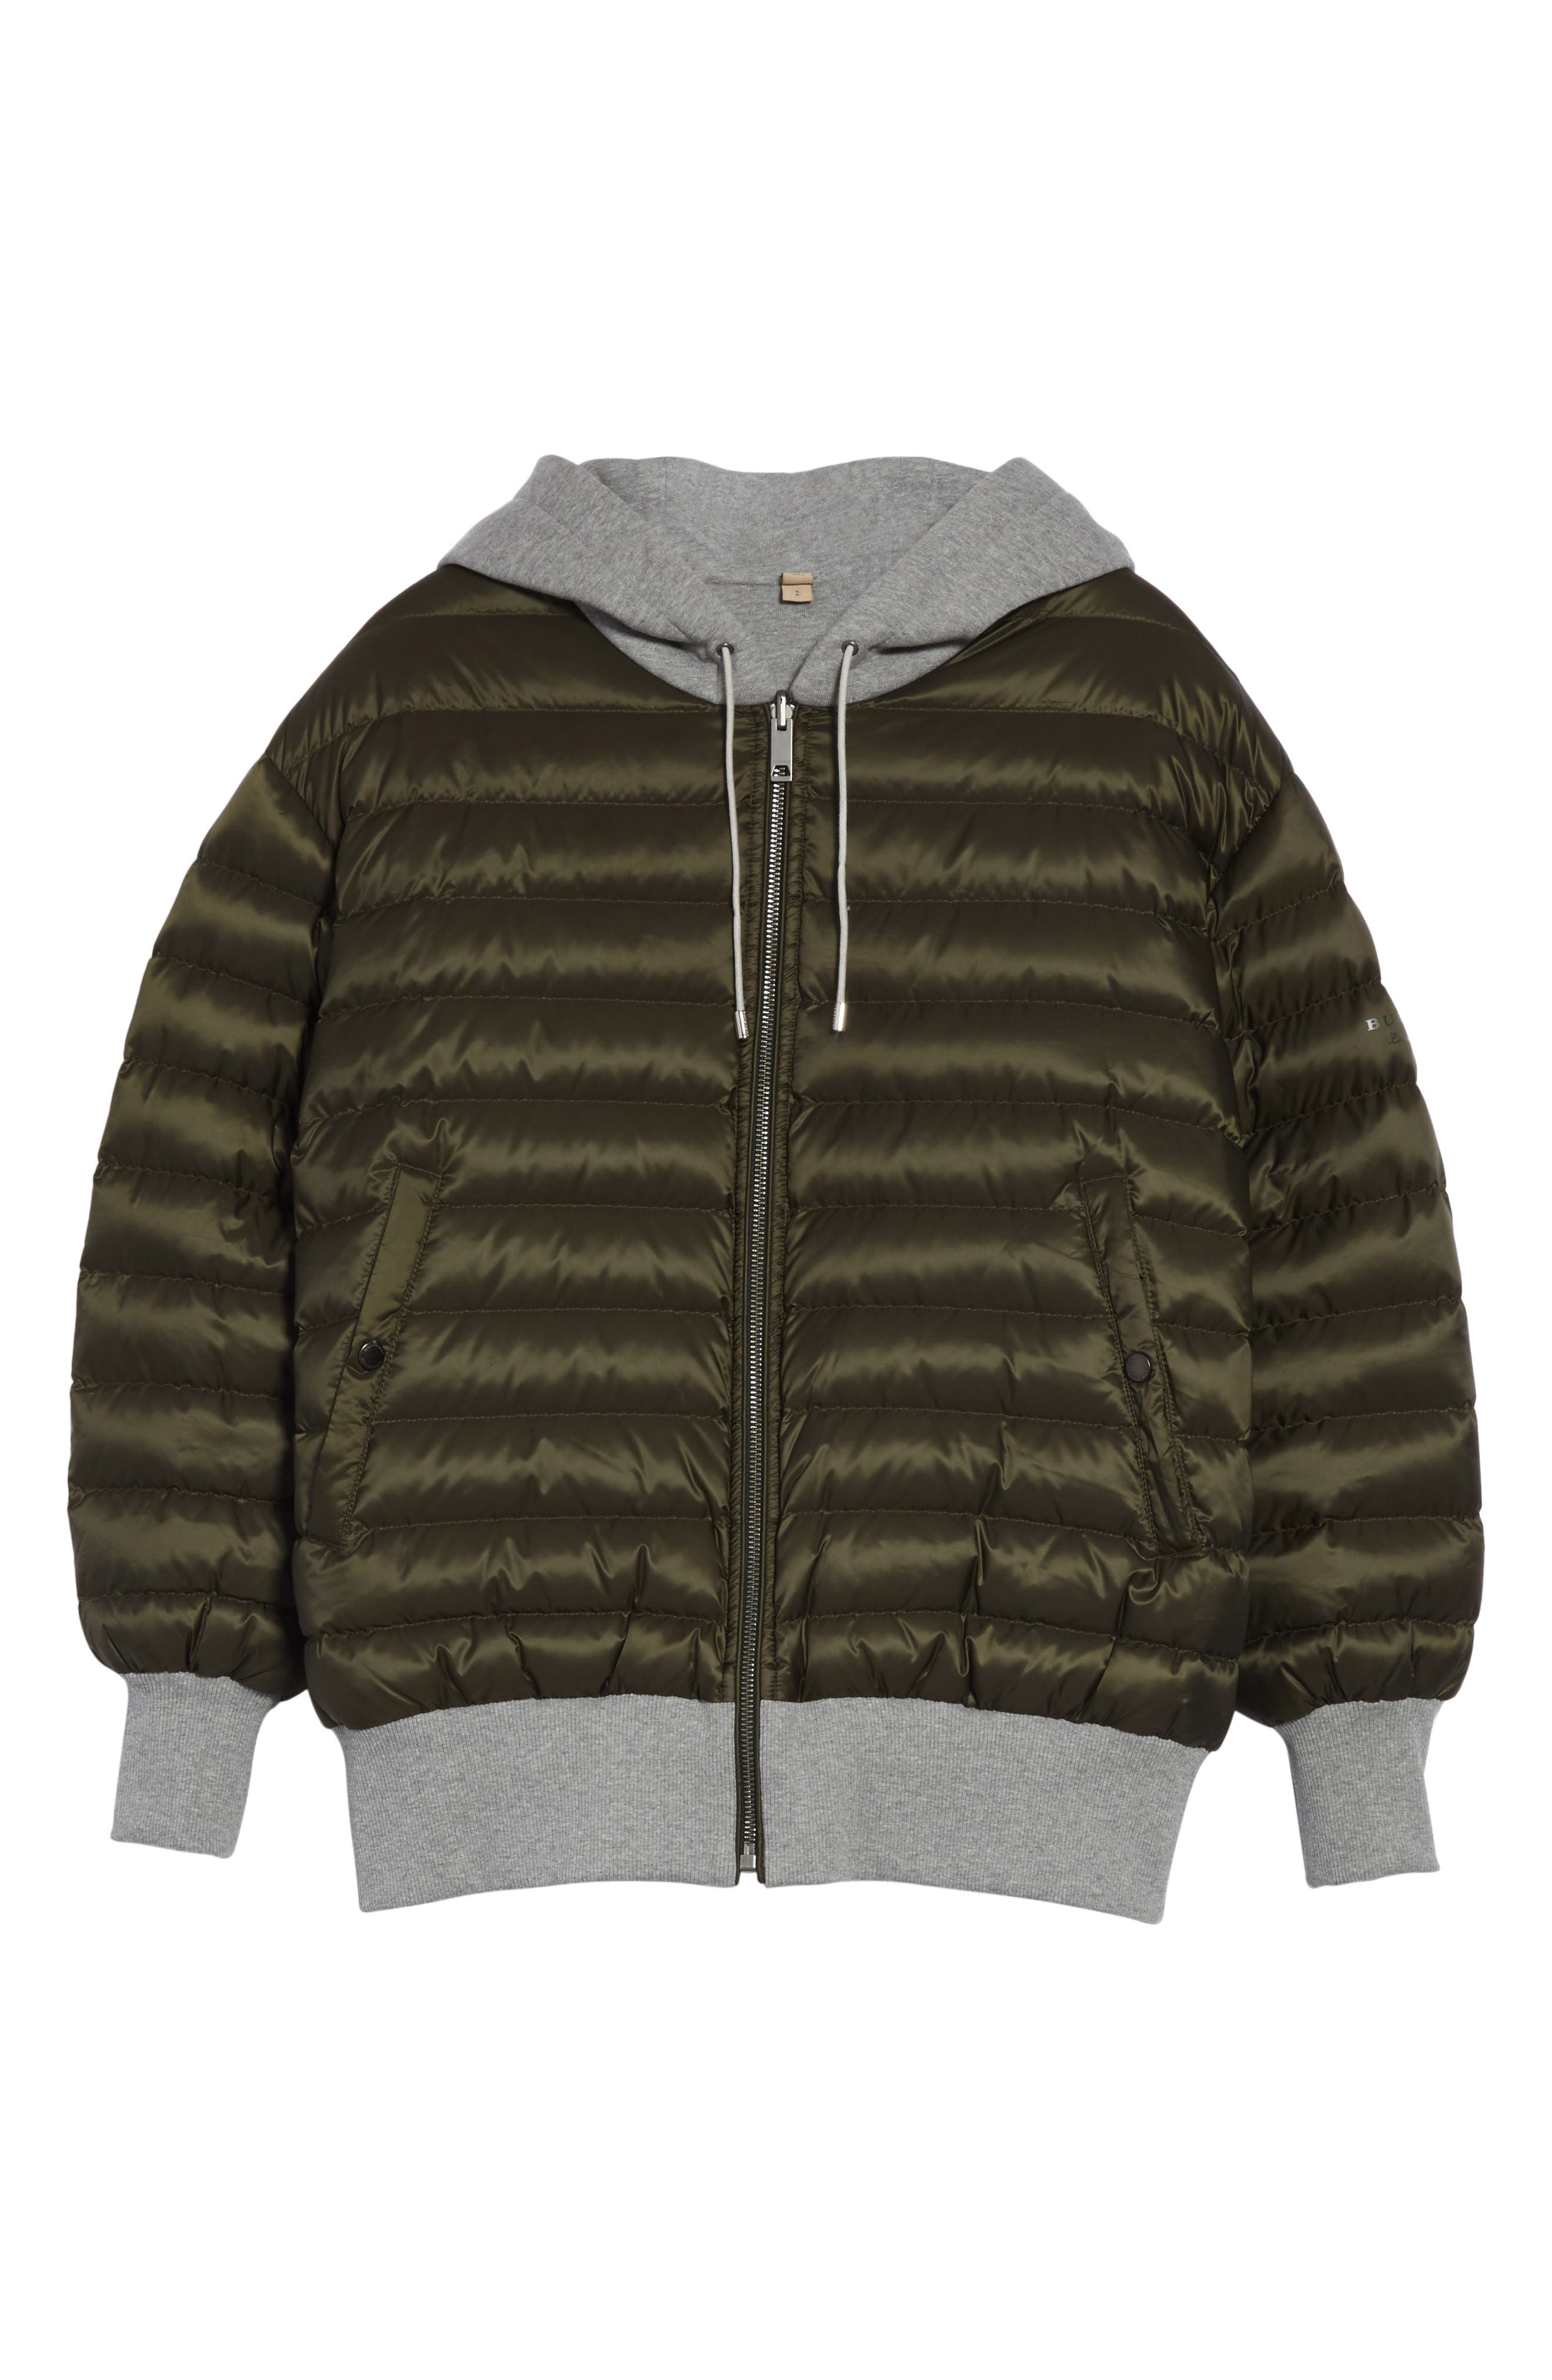 Langleigh Reversible Down Hooded Bomber Jacket,                             Alternate thumbnail 6, color,